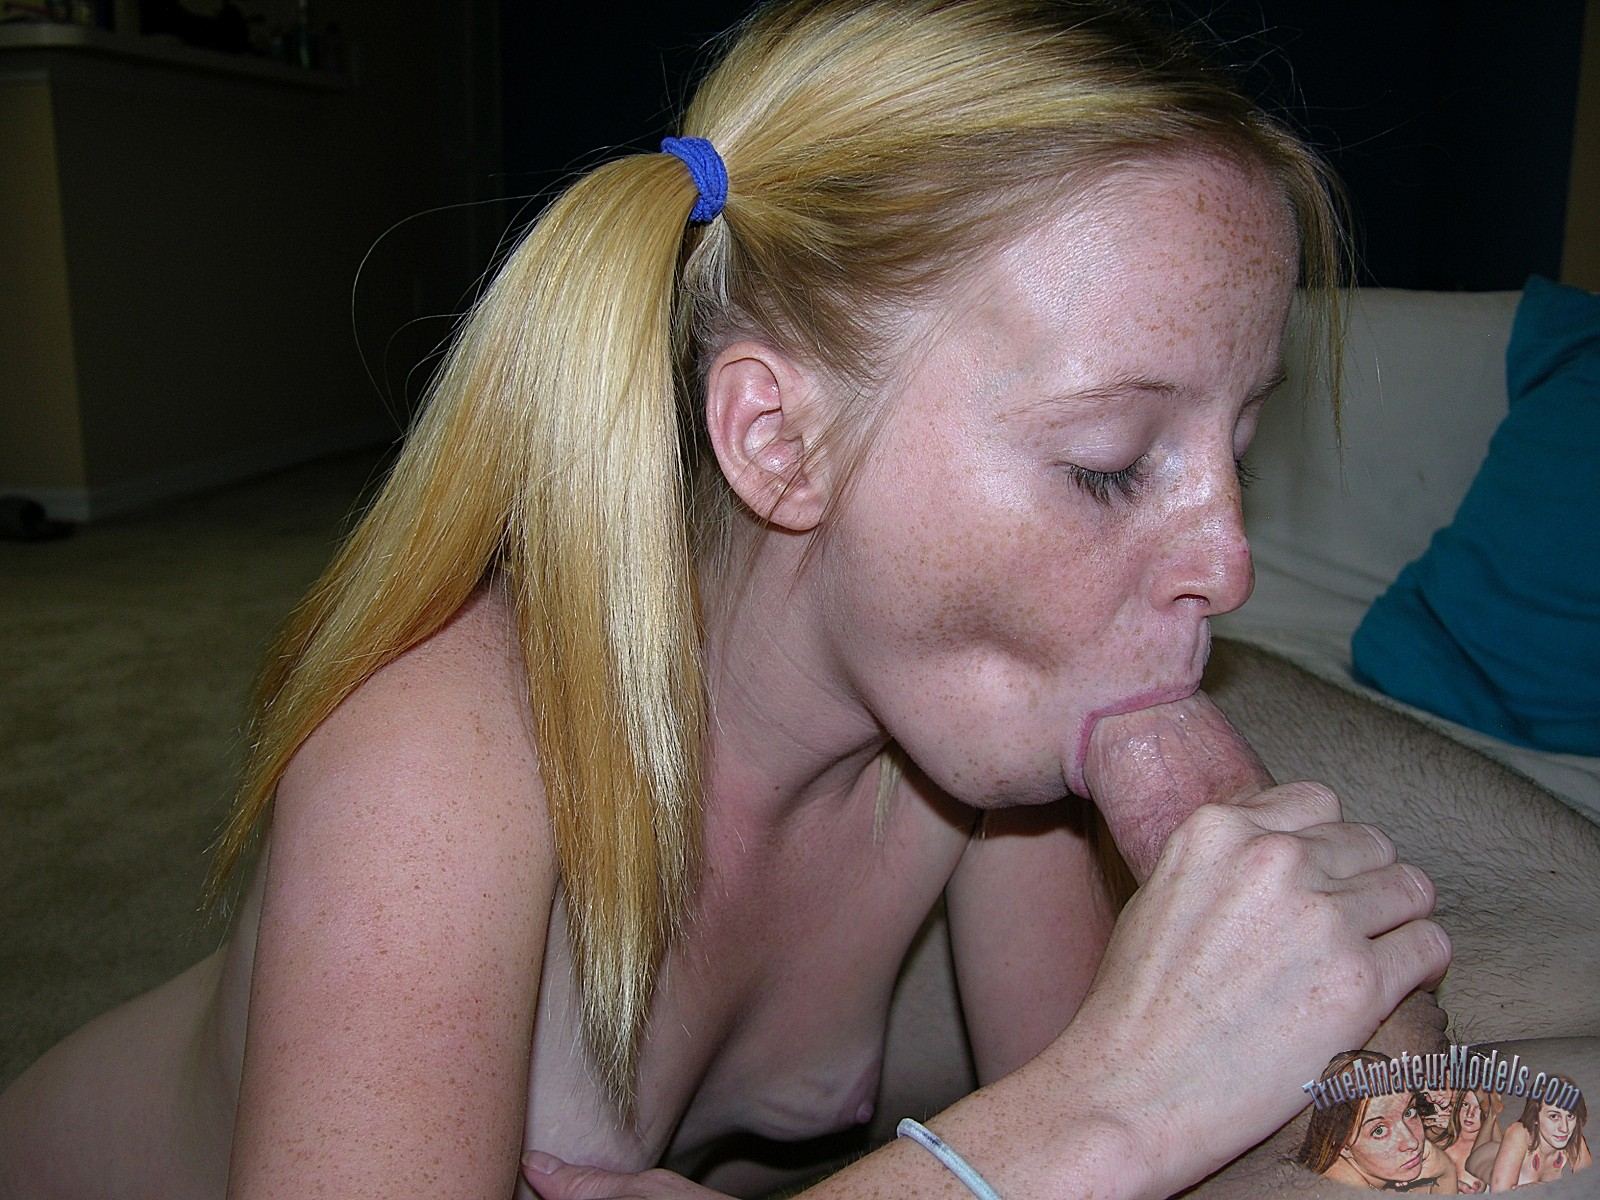 Real young blowjob